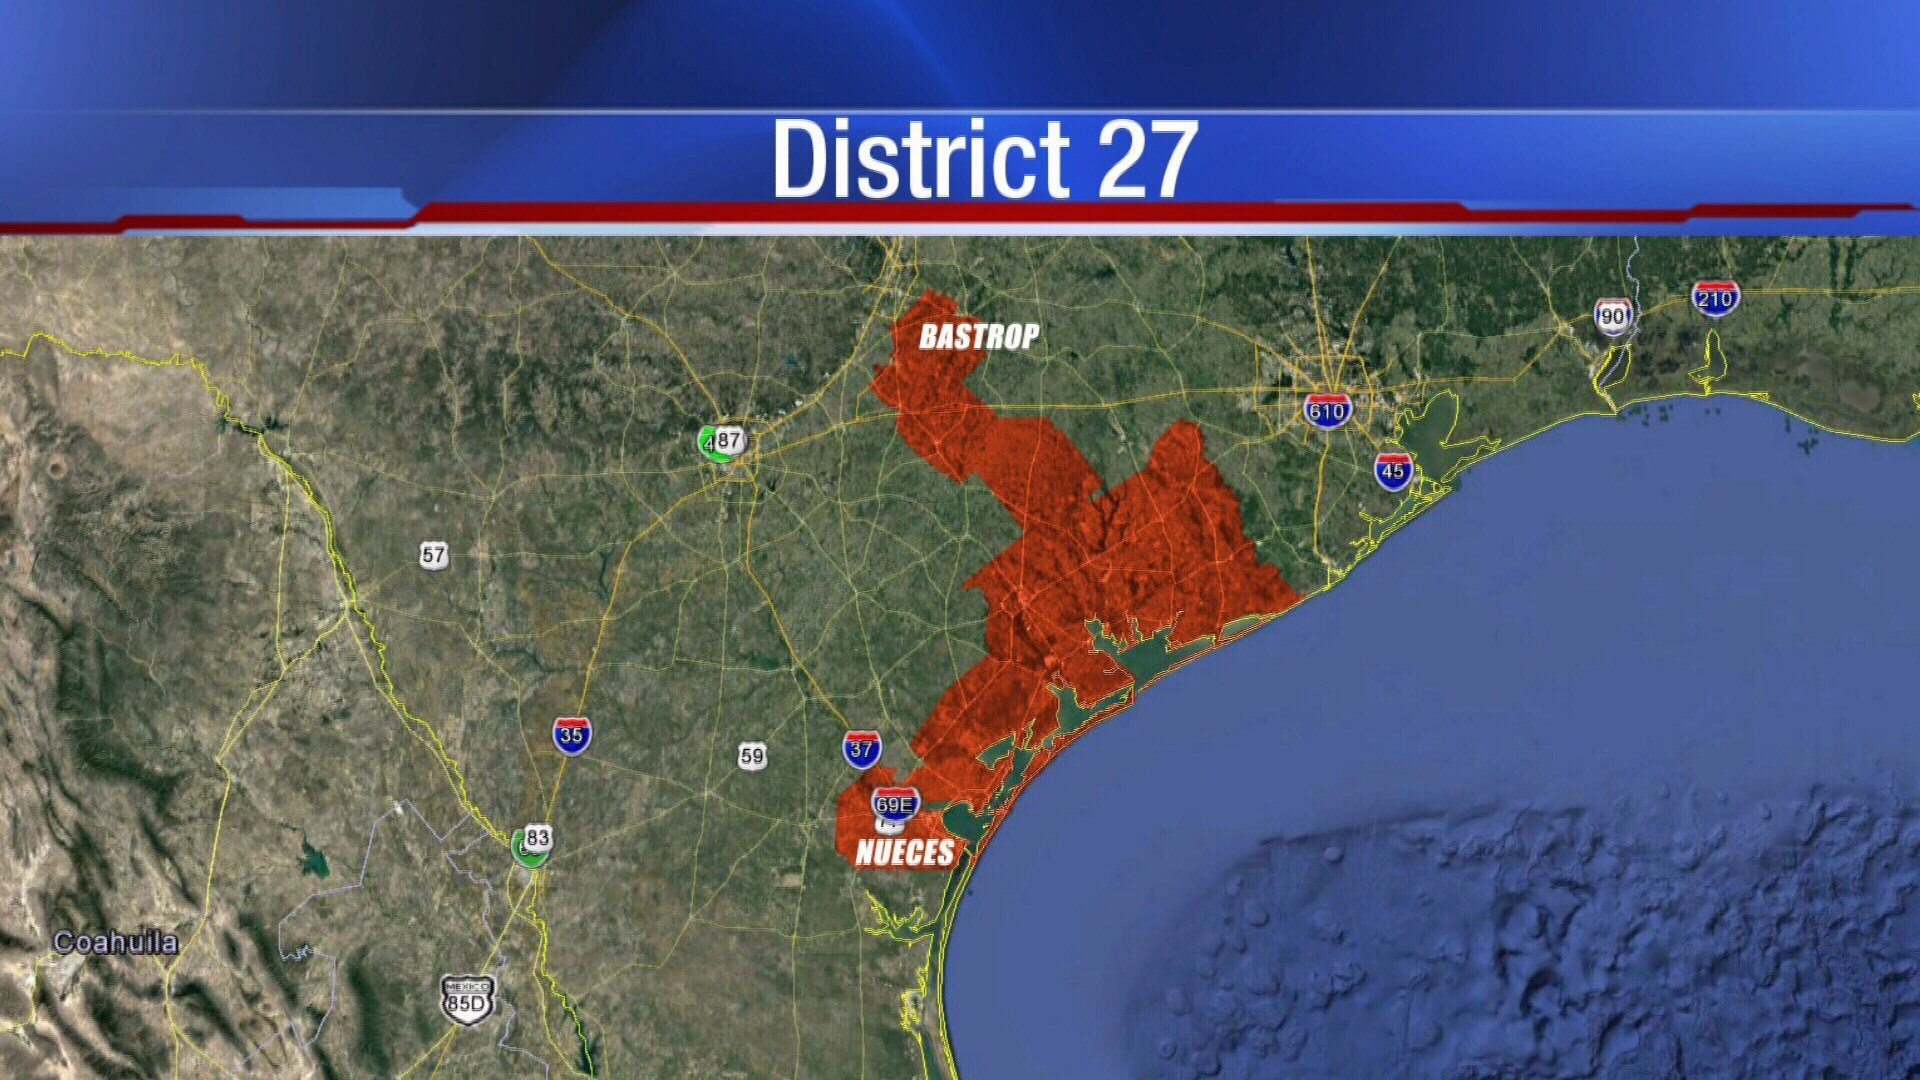 A look at the current Congressional District 27 boundaries.